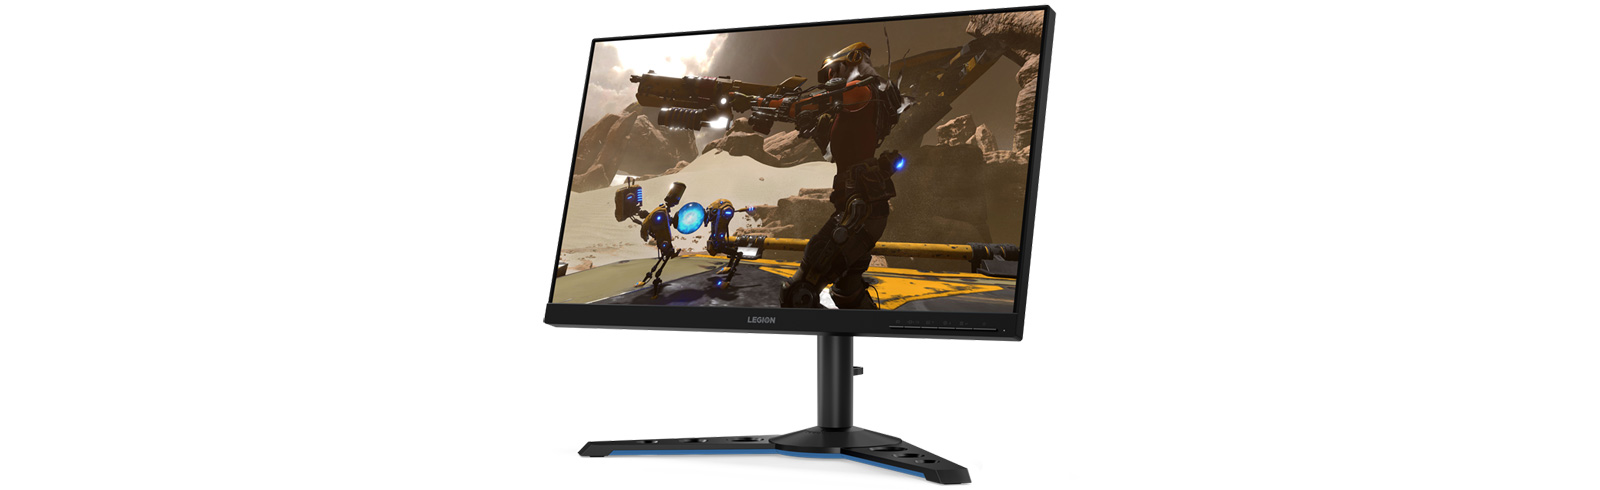 Lenovo unveils the Legion Y25-25 gaming monitor with 240Hz refresh rate, AMD FreeSync Premium